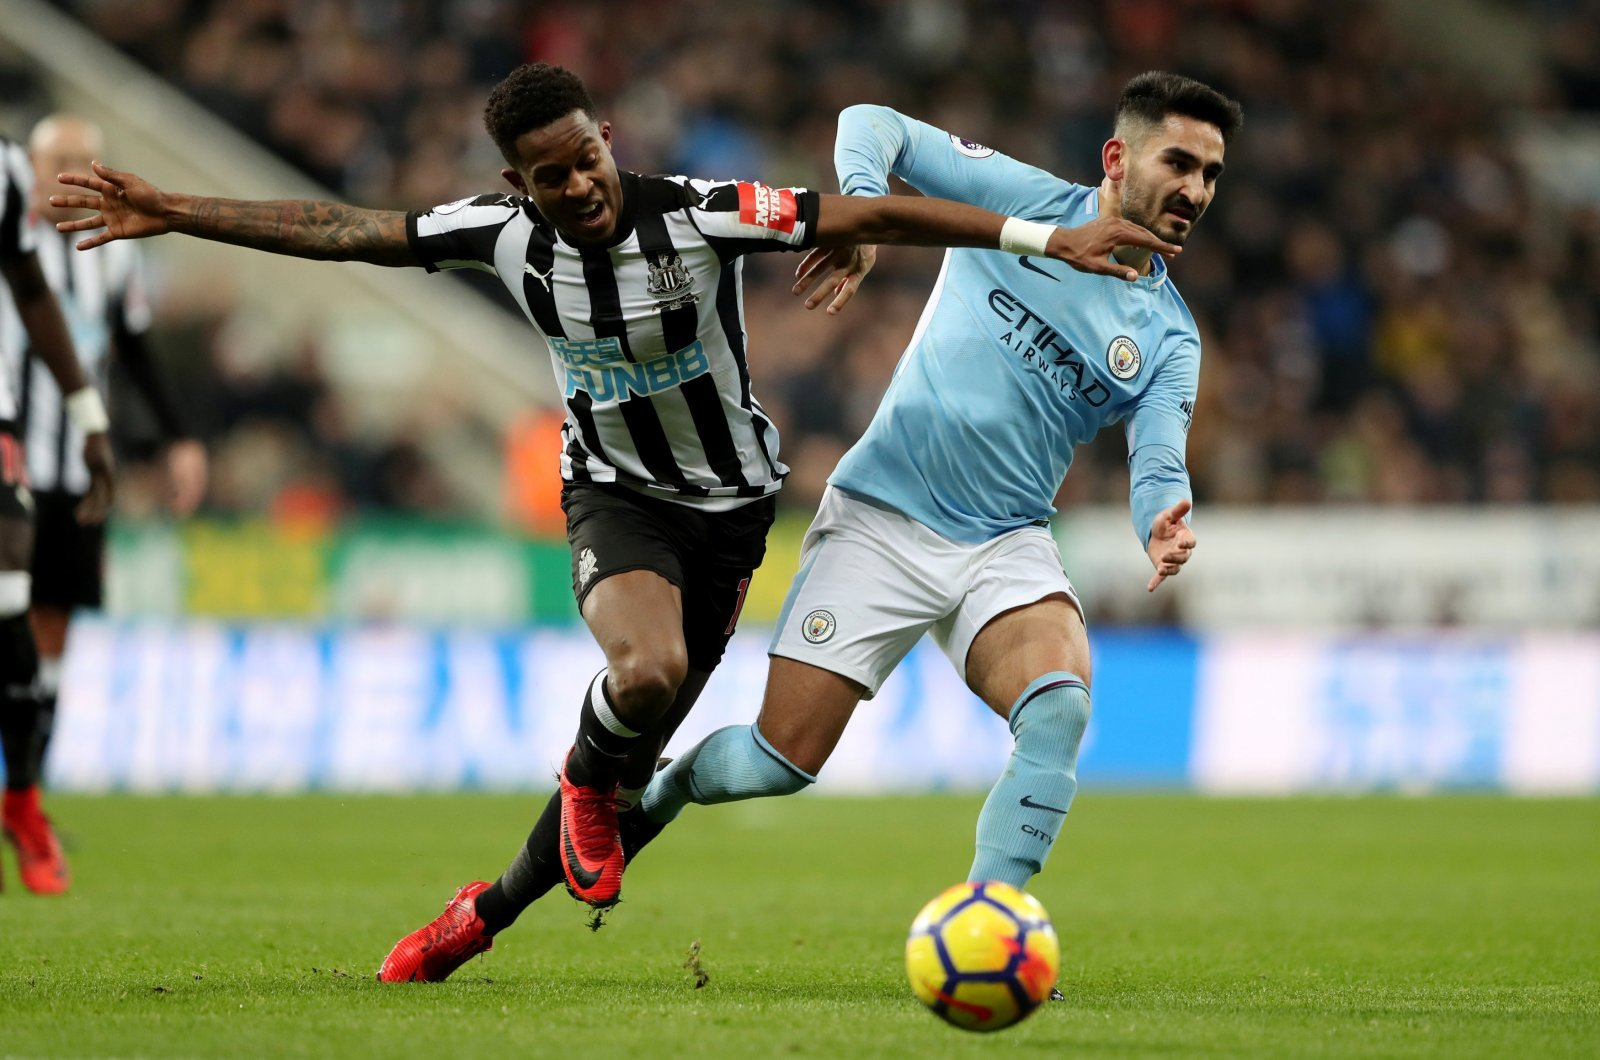 Rolando Aarons relishing his loan spell with Sheffield Wednesday